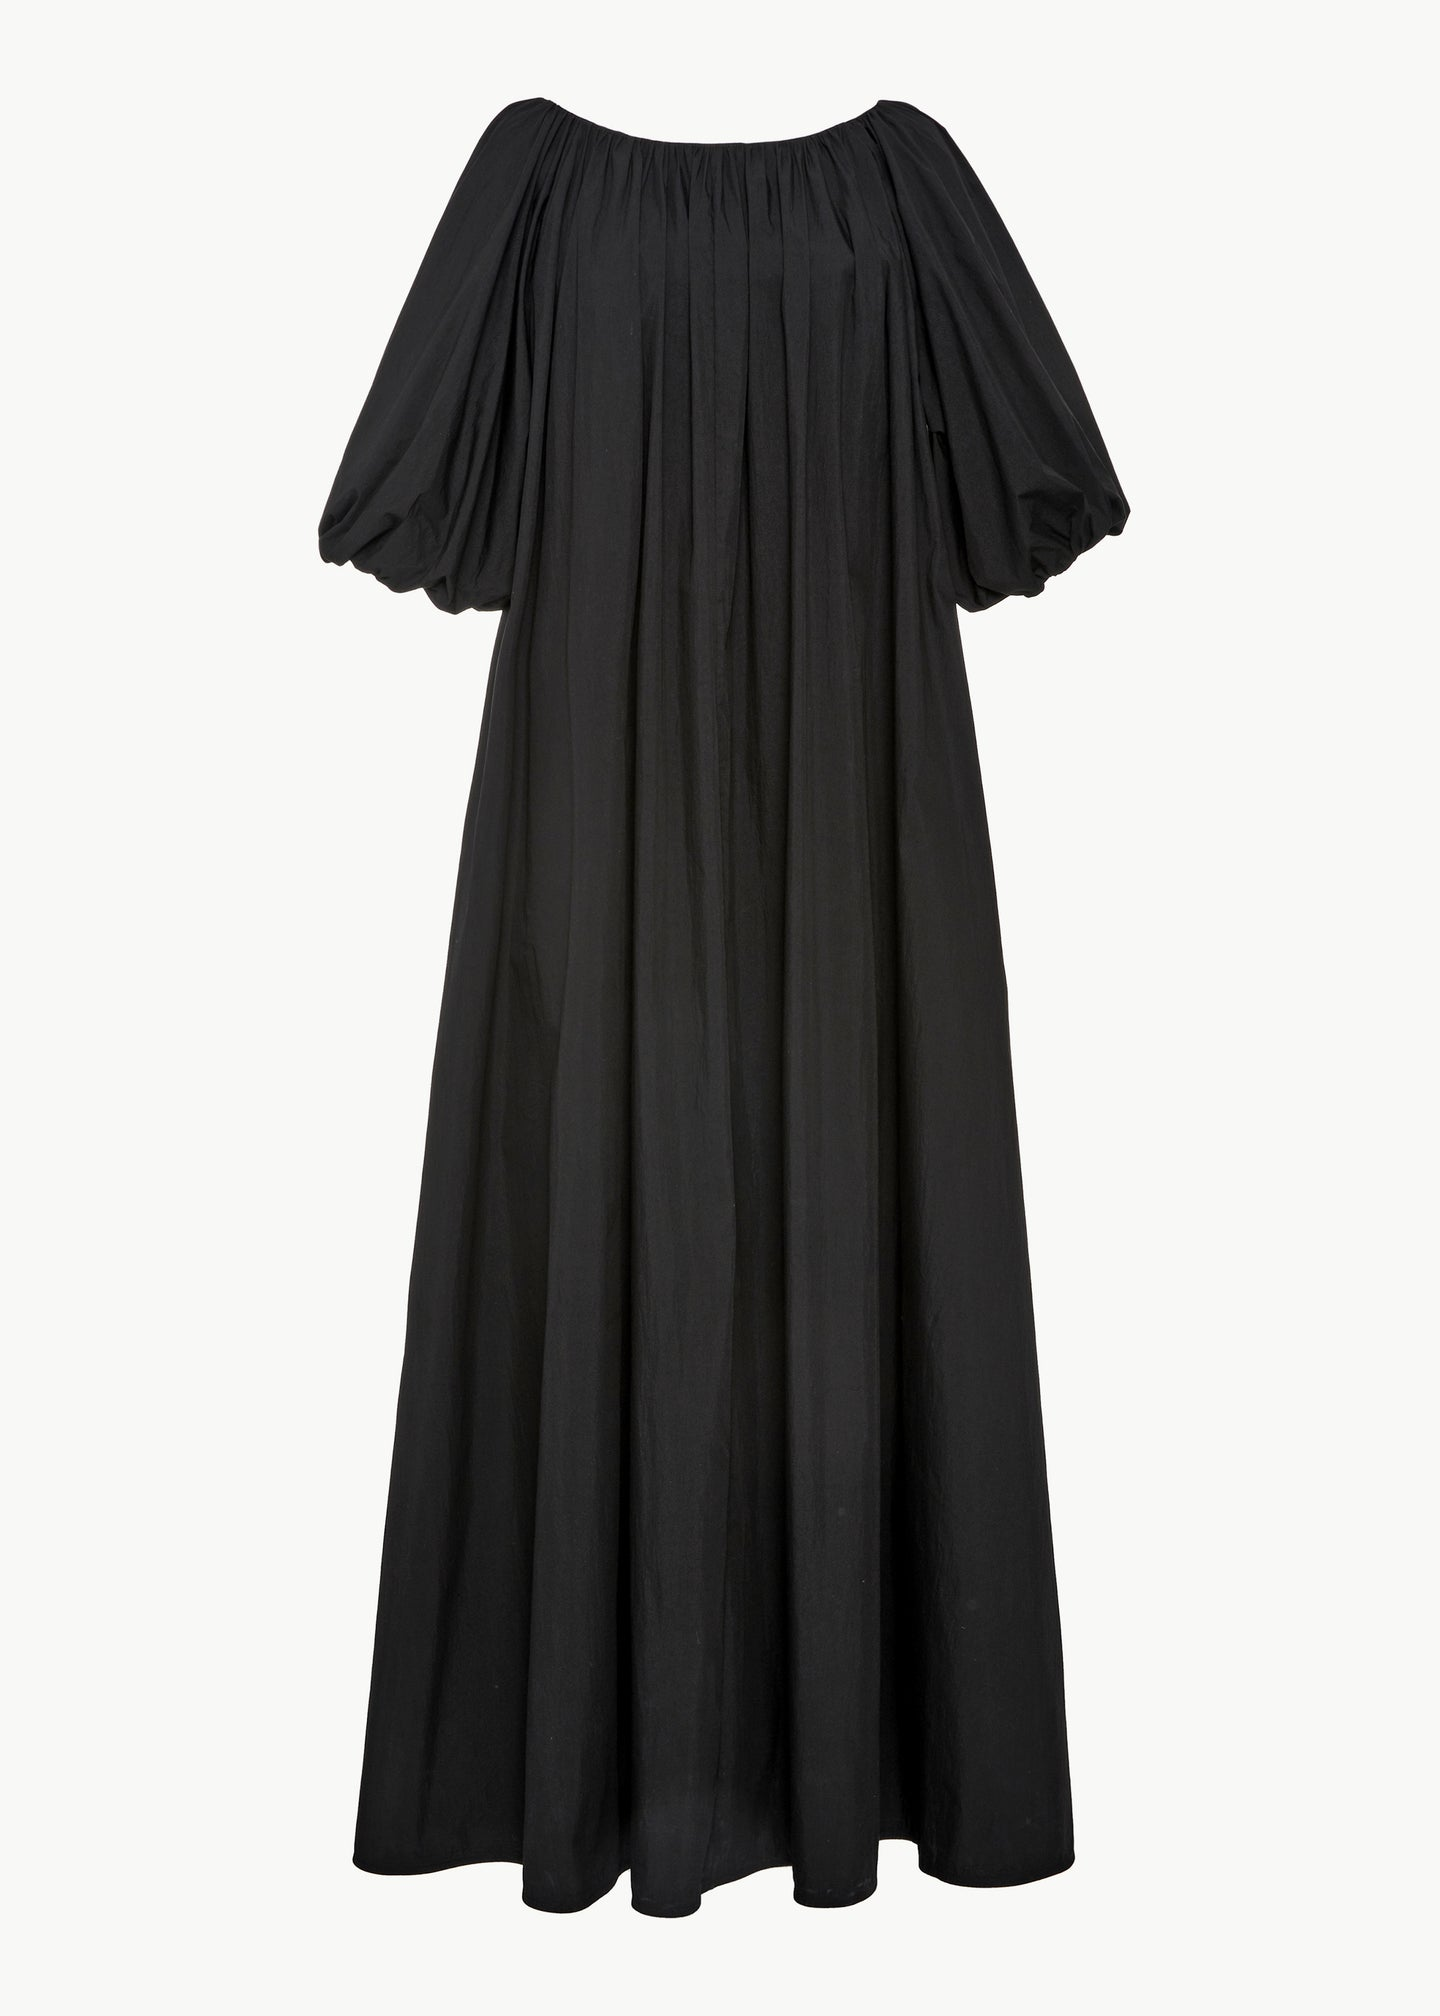 Ruched Sleeve Dress in Cotton - Black - CO